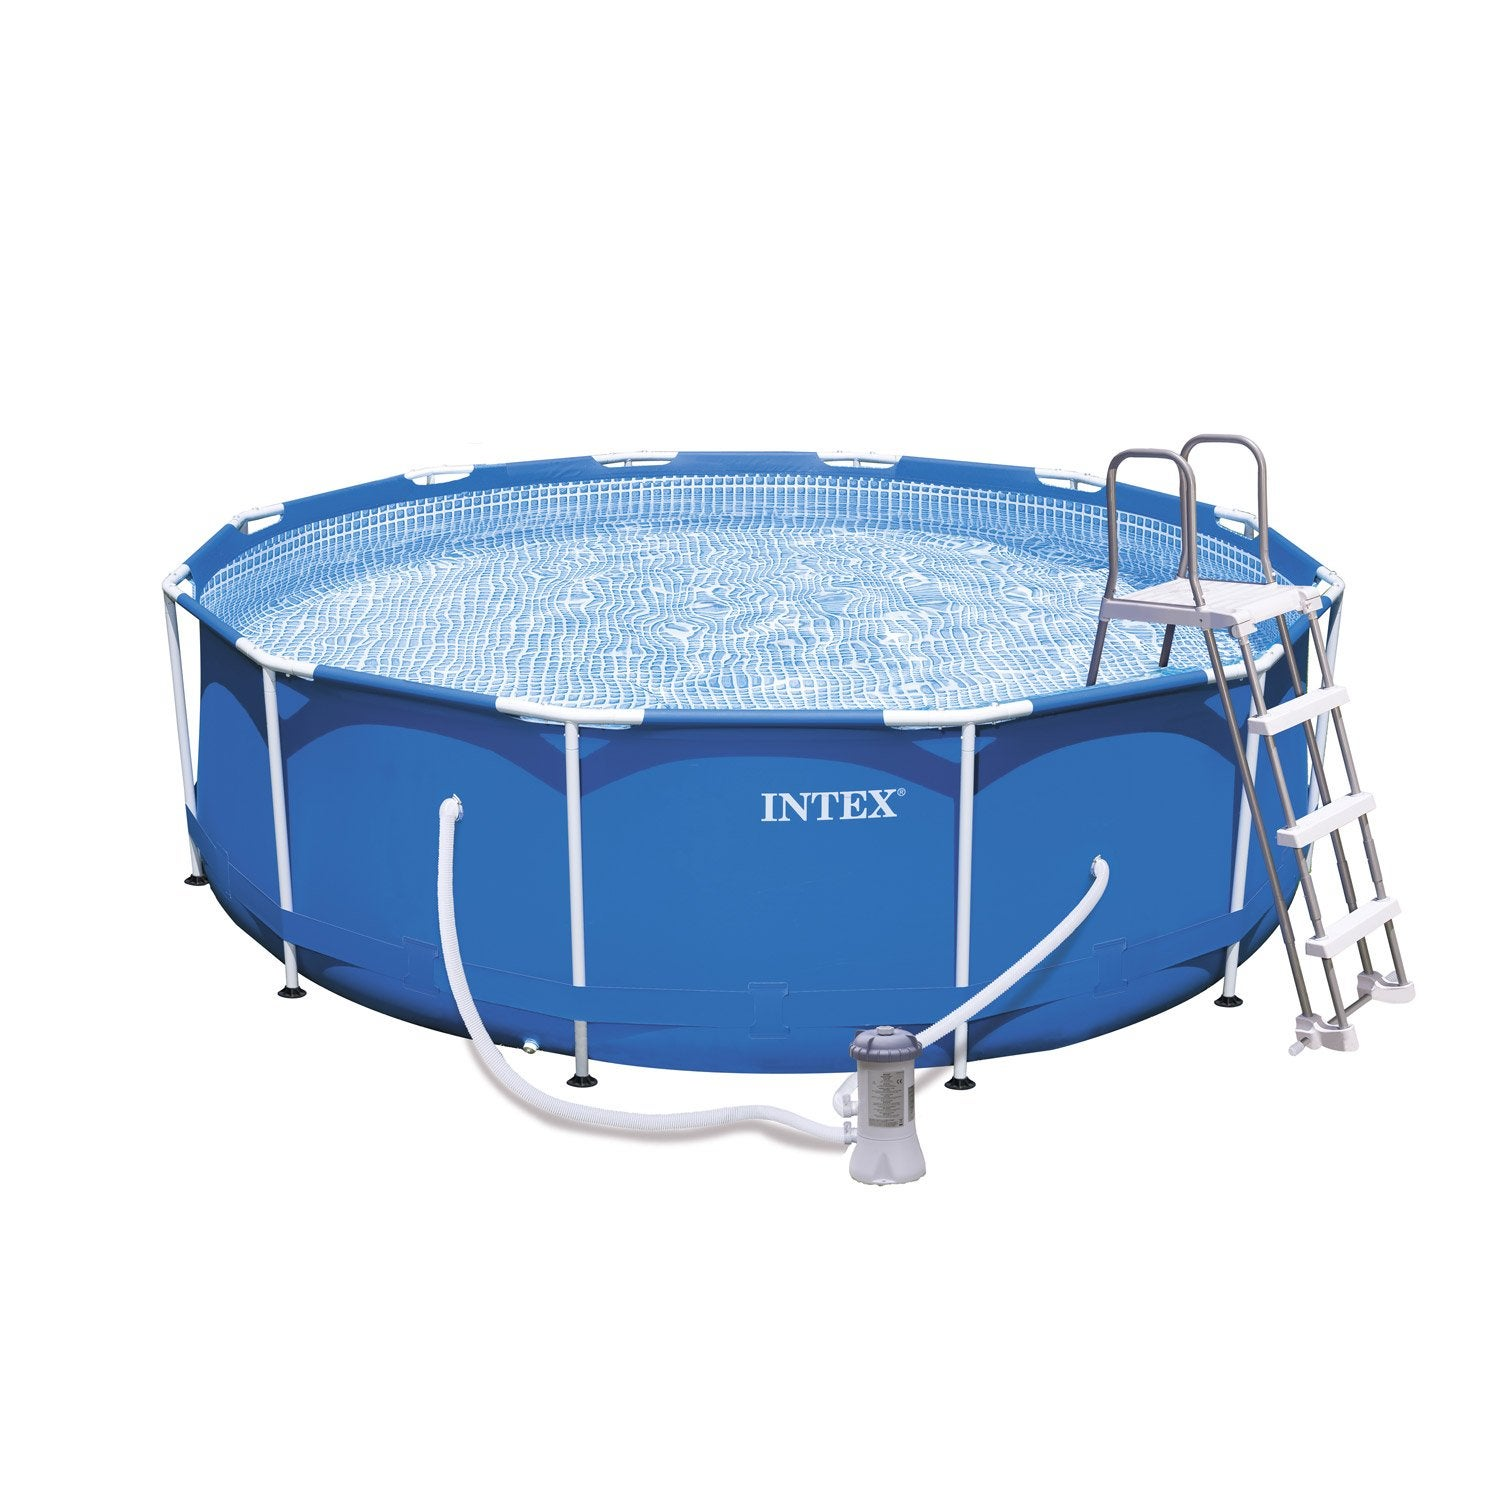 Piscine hors sol autoportante tubulaire m tal frame intex for Aspirateur piscine leroy merlin